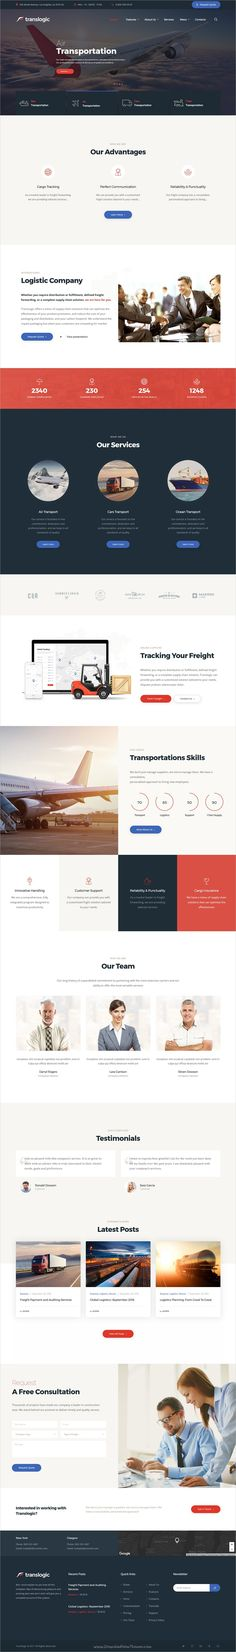 Translogic is a stylish and powerful #WordPress theme perfect for #webdev #logistics, #trucking, warehousing, transportation and freight services website download now➩ https://themeforest.net/item/translogic-logistics-transportation-wp-theme/19329142?ref=Datasata